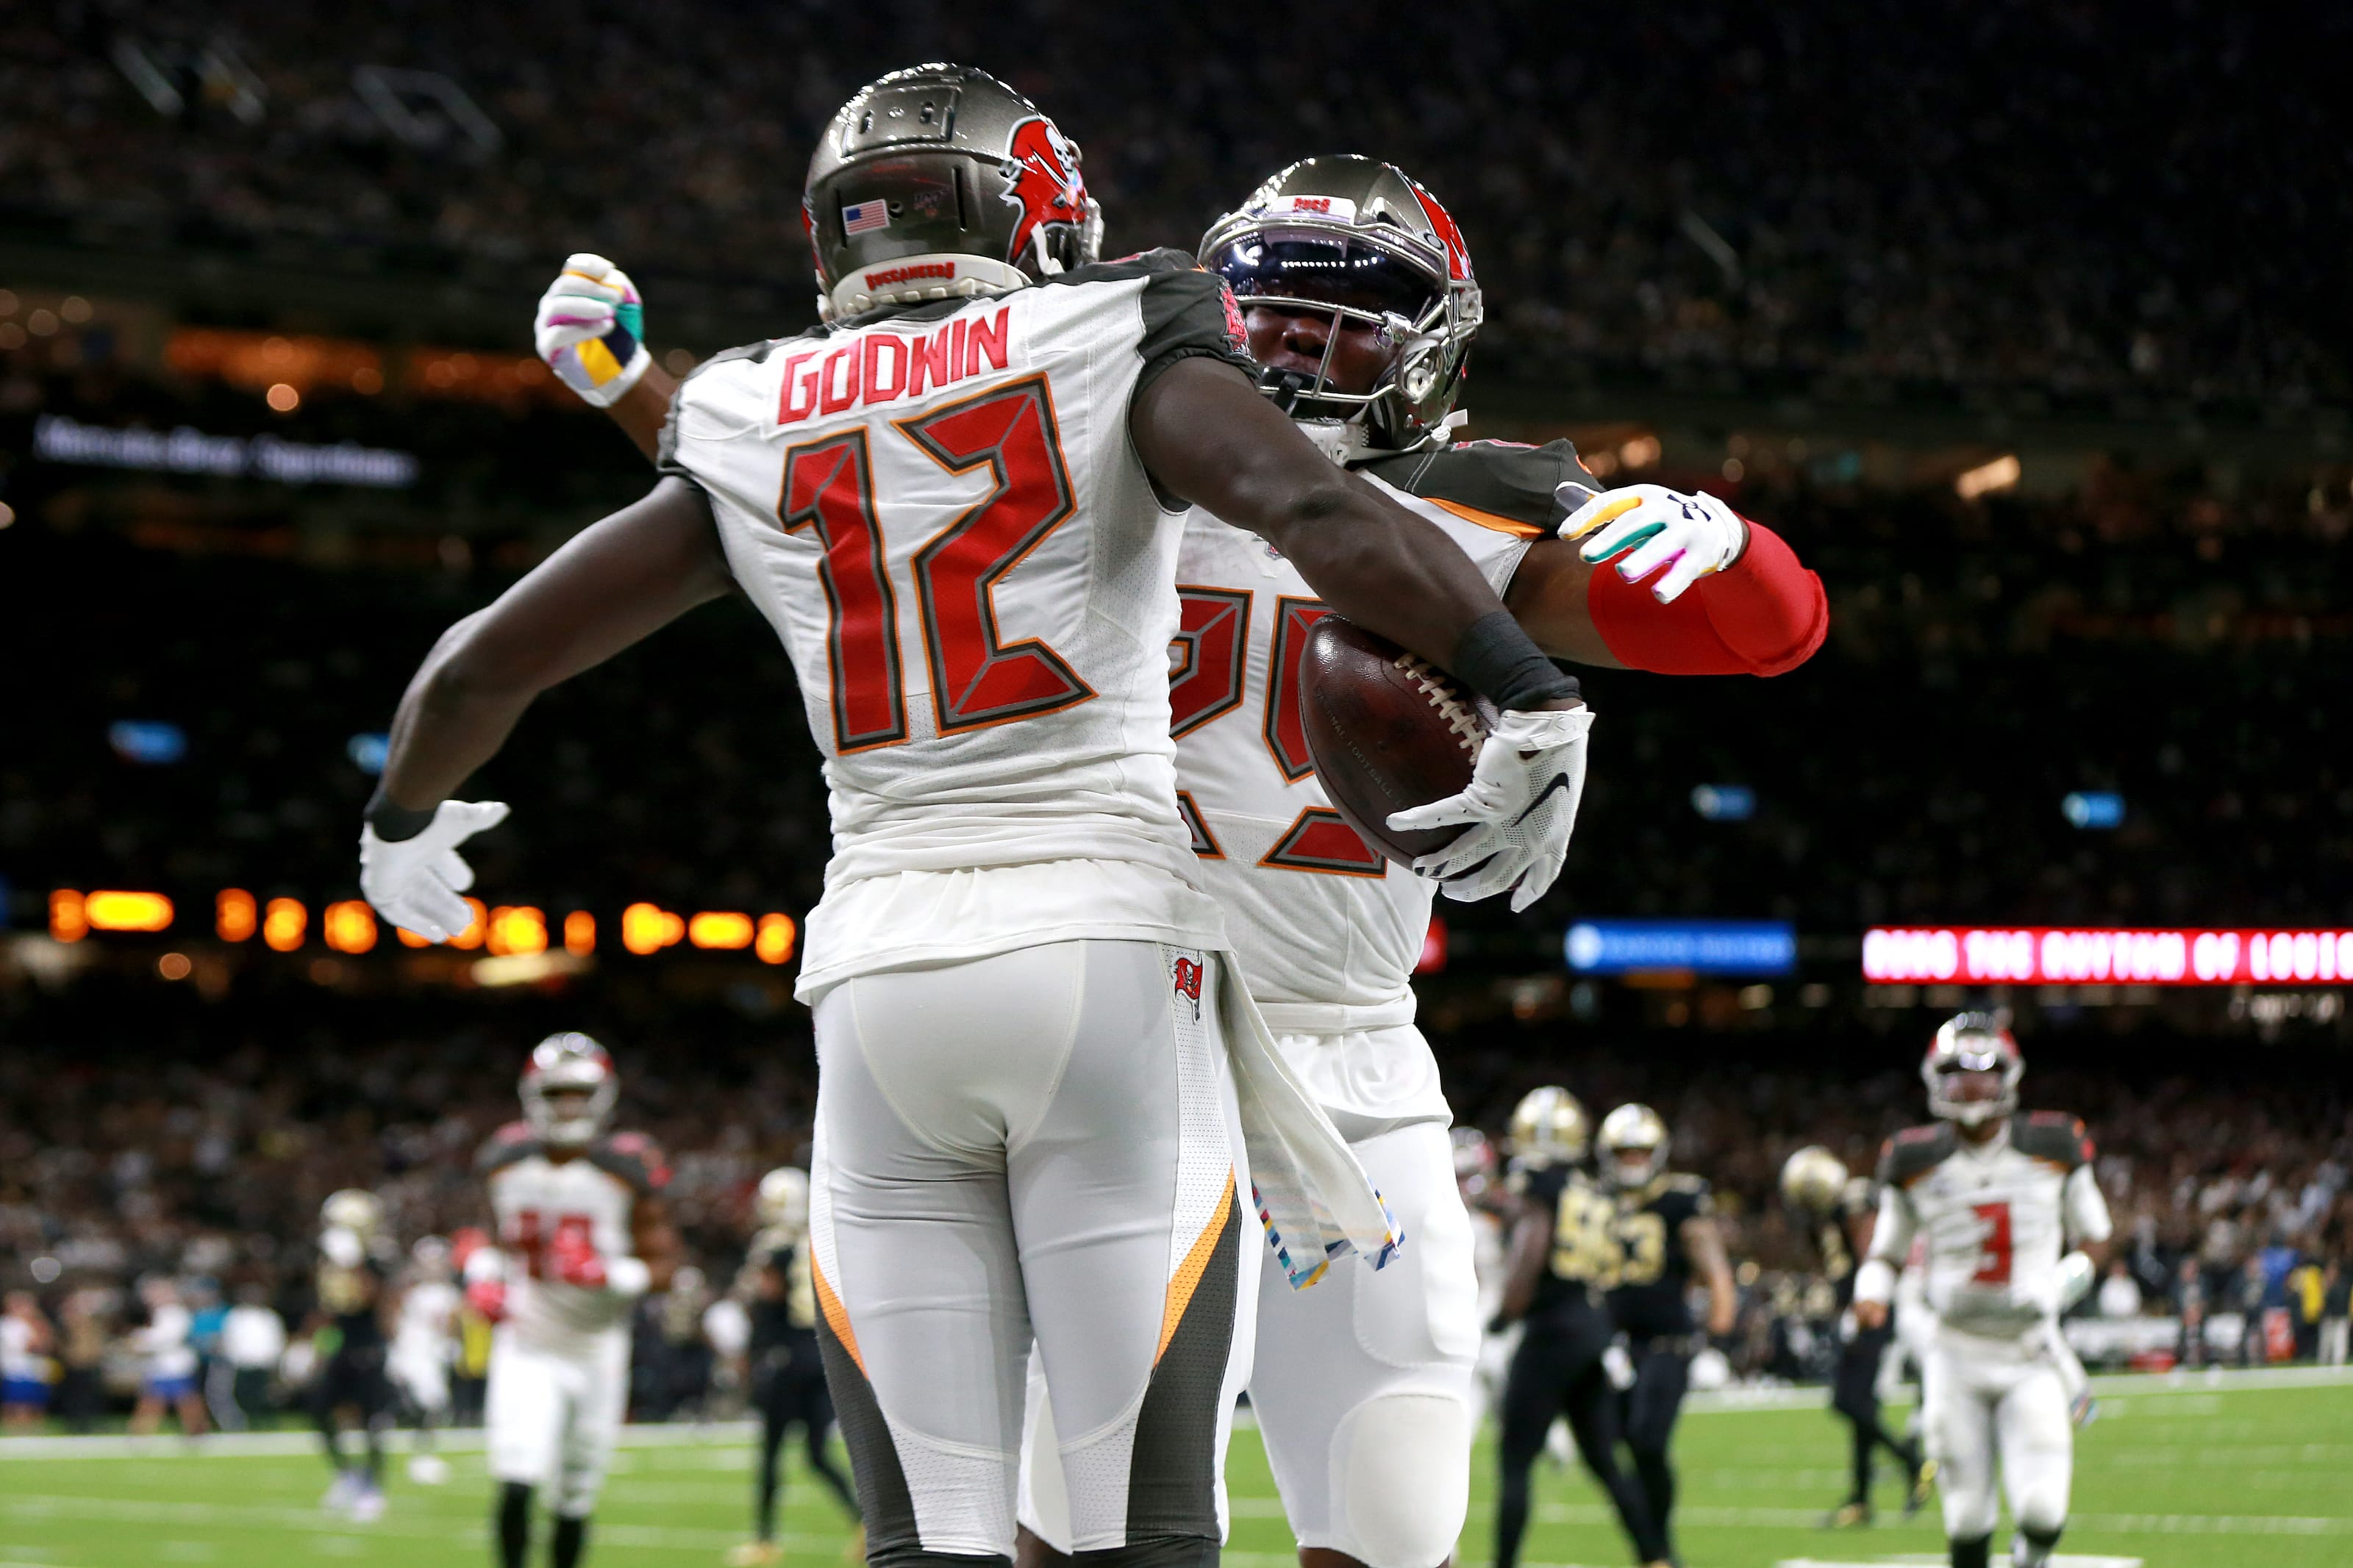 Chris Godwin Or Mike Evans Can The Buccaneers Afford Both Page 4